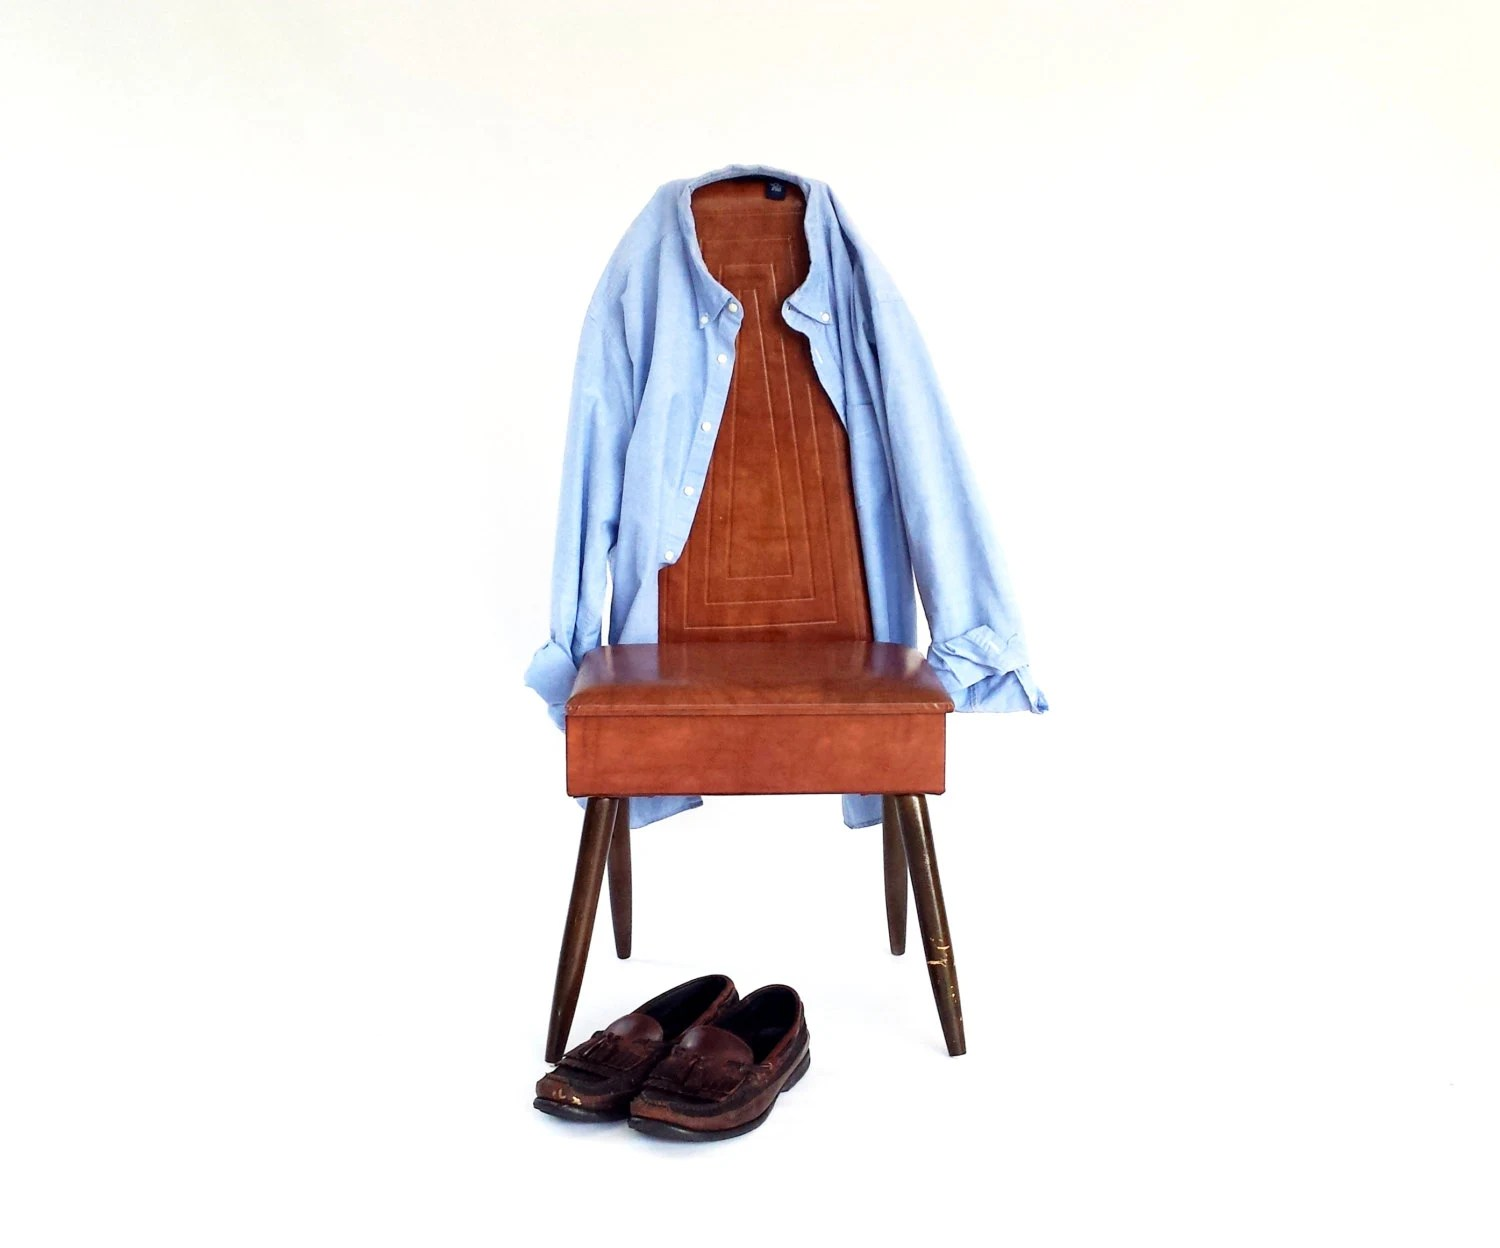 Mens Valet Chair Valet Chair Mid Century Mens Wardrobe Chair By